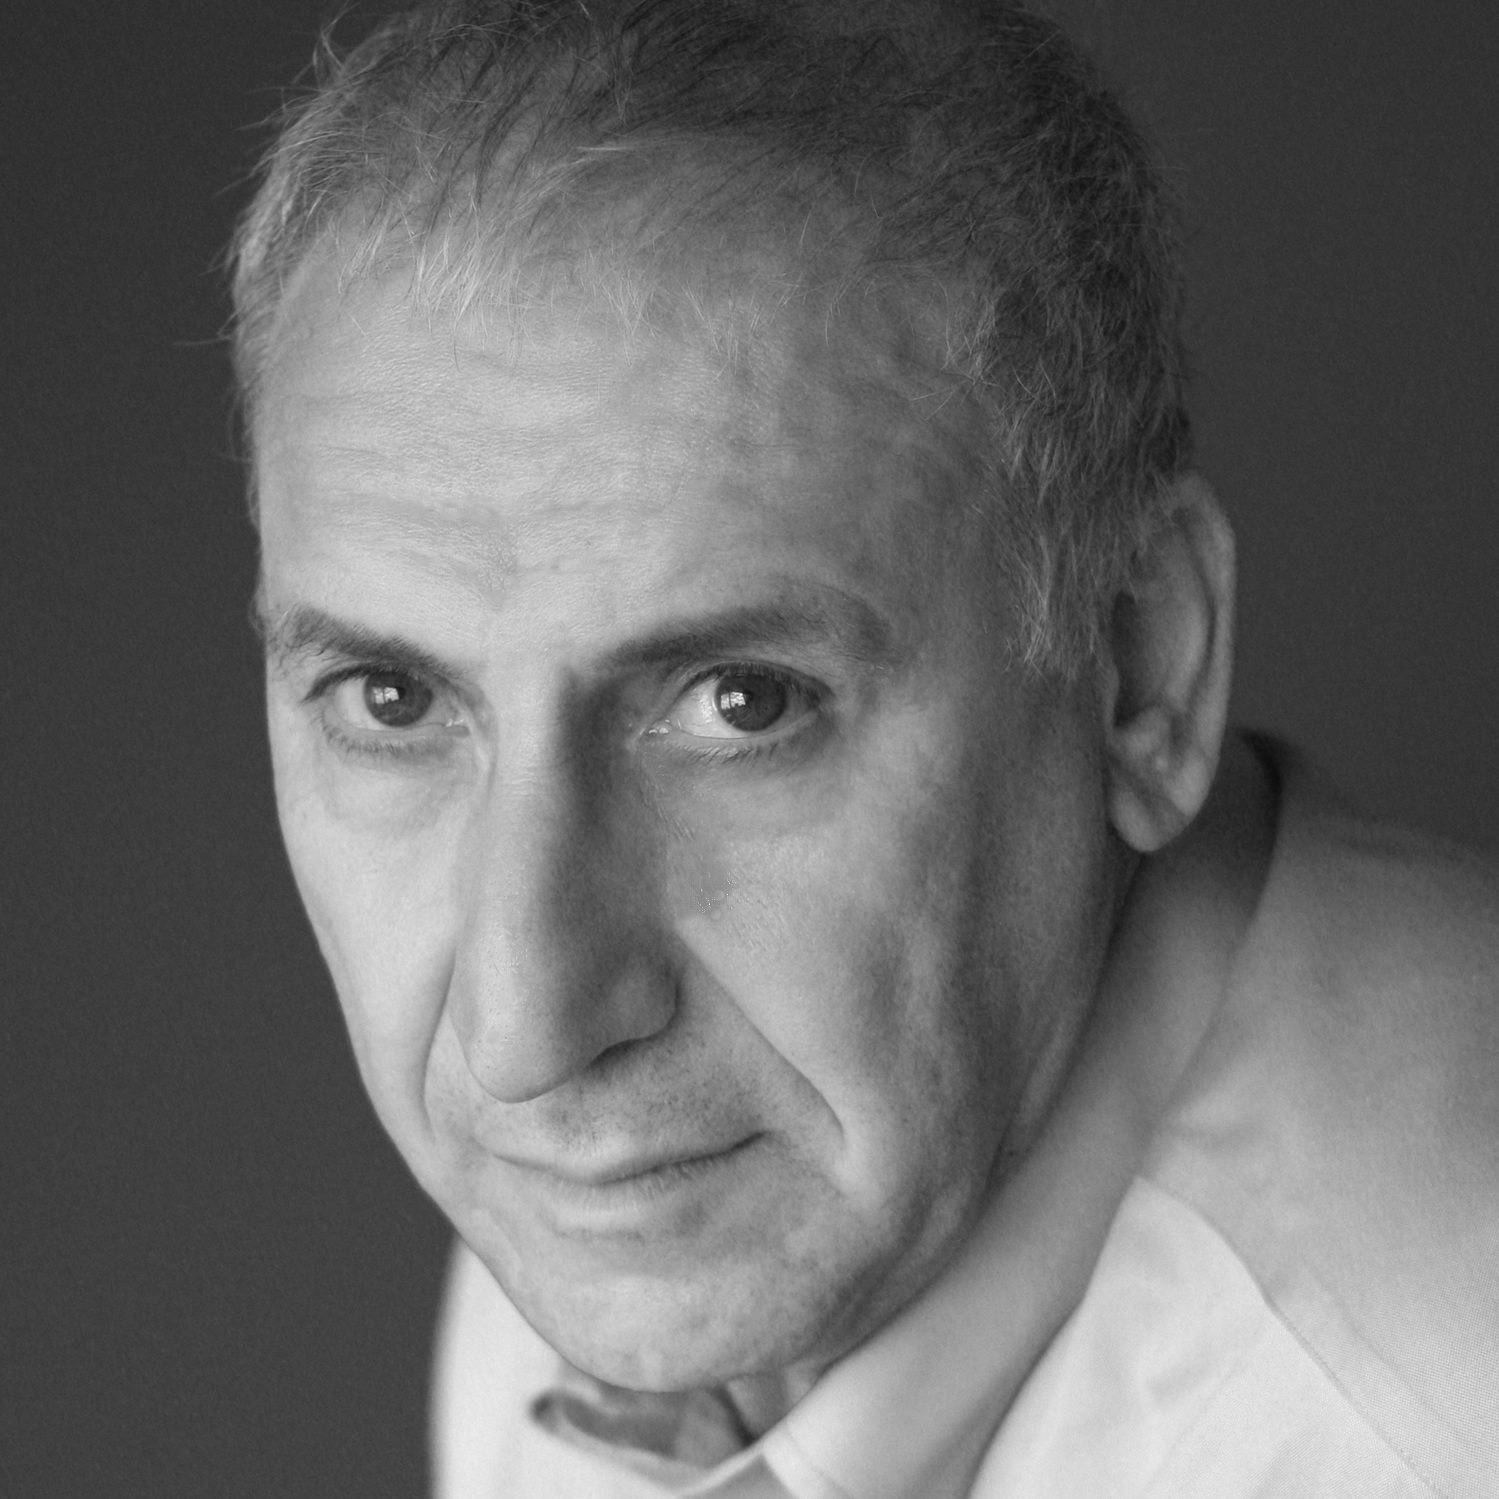 Edward Hirsch - was elected a Chancellor of the Academy of American Poets in 2008. His first collection, For the Sleepwalkers (1981), received the Delmore Schwartz Memorial Award from NYU and the Lavan Younger Poets Award from the Academy of American Poets. His second collection, Wild Gratitude (1986), won the National Book Critics Award. Since then, he has published six additional books of poems: The Night Parade (1989), Earthly Measures (1994), On Love (1998), Lay Back the Darkness (2003), Special Orders (2008), and The Living Fire: New and Selected Poems (2010), which brings together thirty-five years of poems. Hirsch is also the author of five prose books, including A Poet's Glossary (2014), Poet's Choice (2006) and the national bestseller How to Read a Poem and Fall in Love with Poetry (1999). He is president of the John Simon Guggenheim Memorial Foundation.